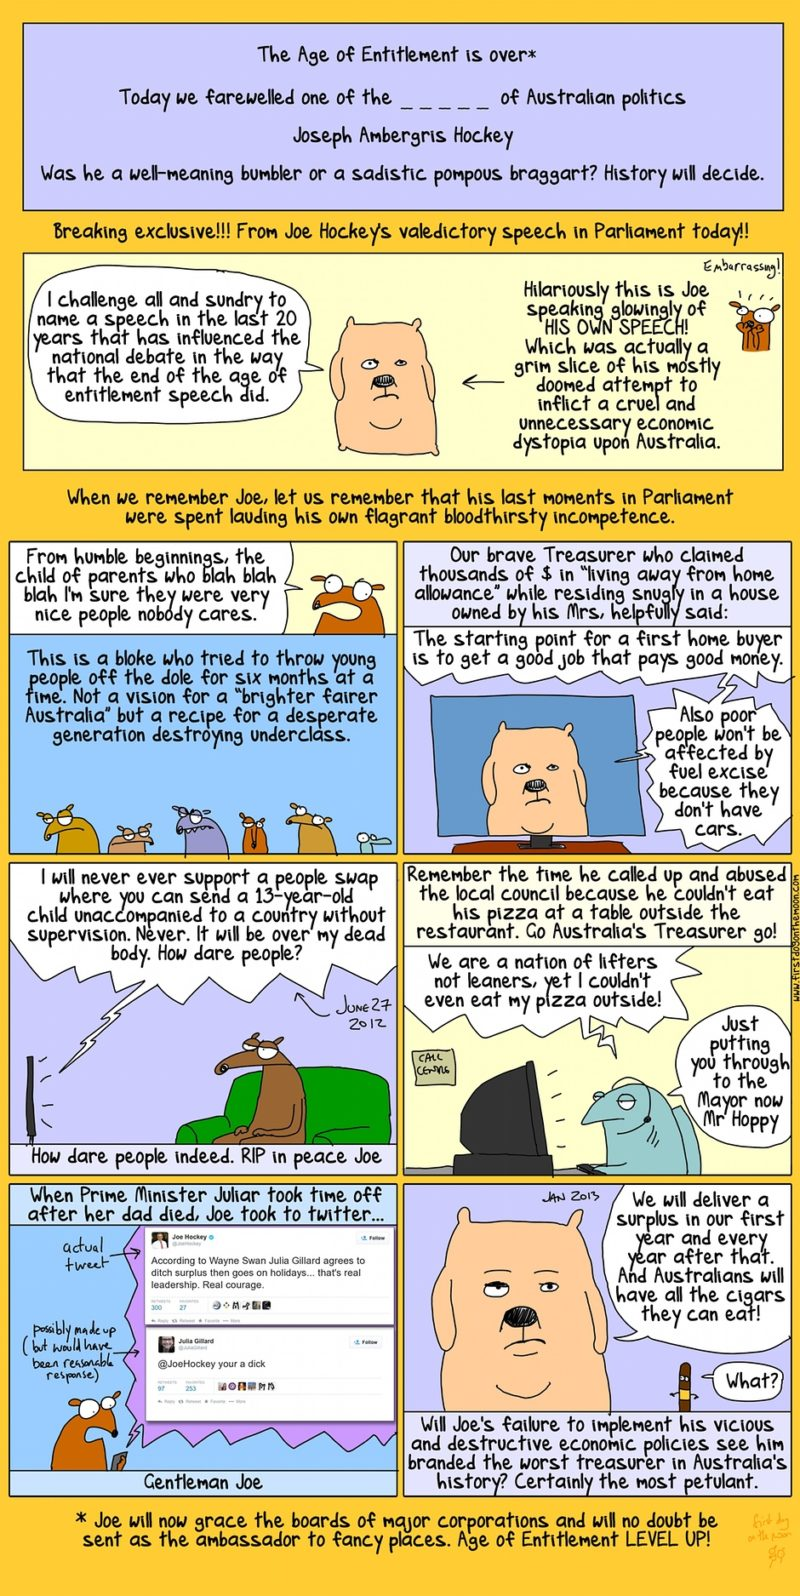 Was Joe Hockey a well-meaning bumbler or a sadistic pompous braggart?